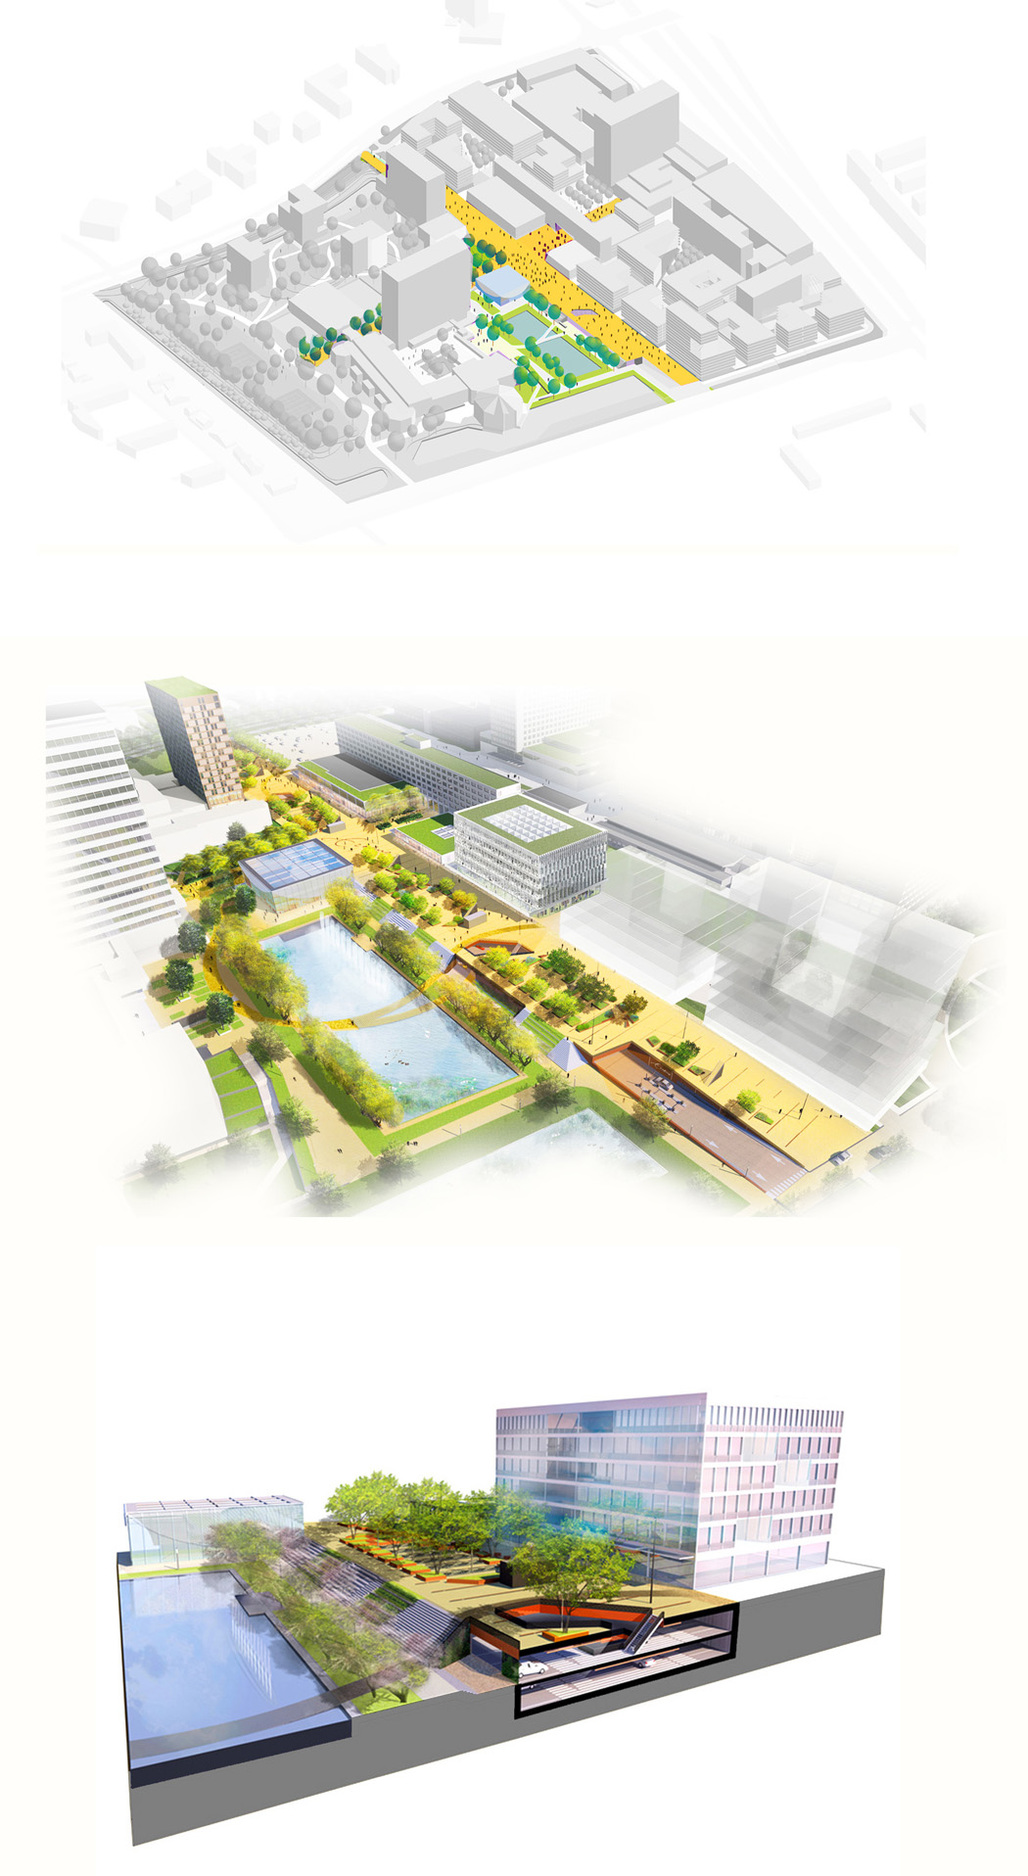 diagrams of masterplan and first phase of the new campus